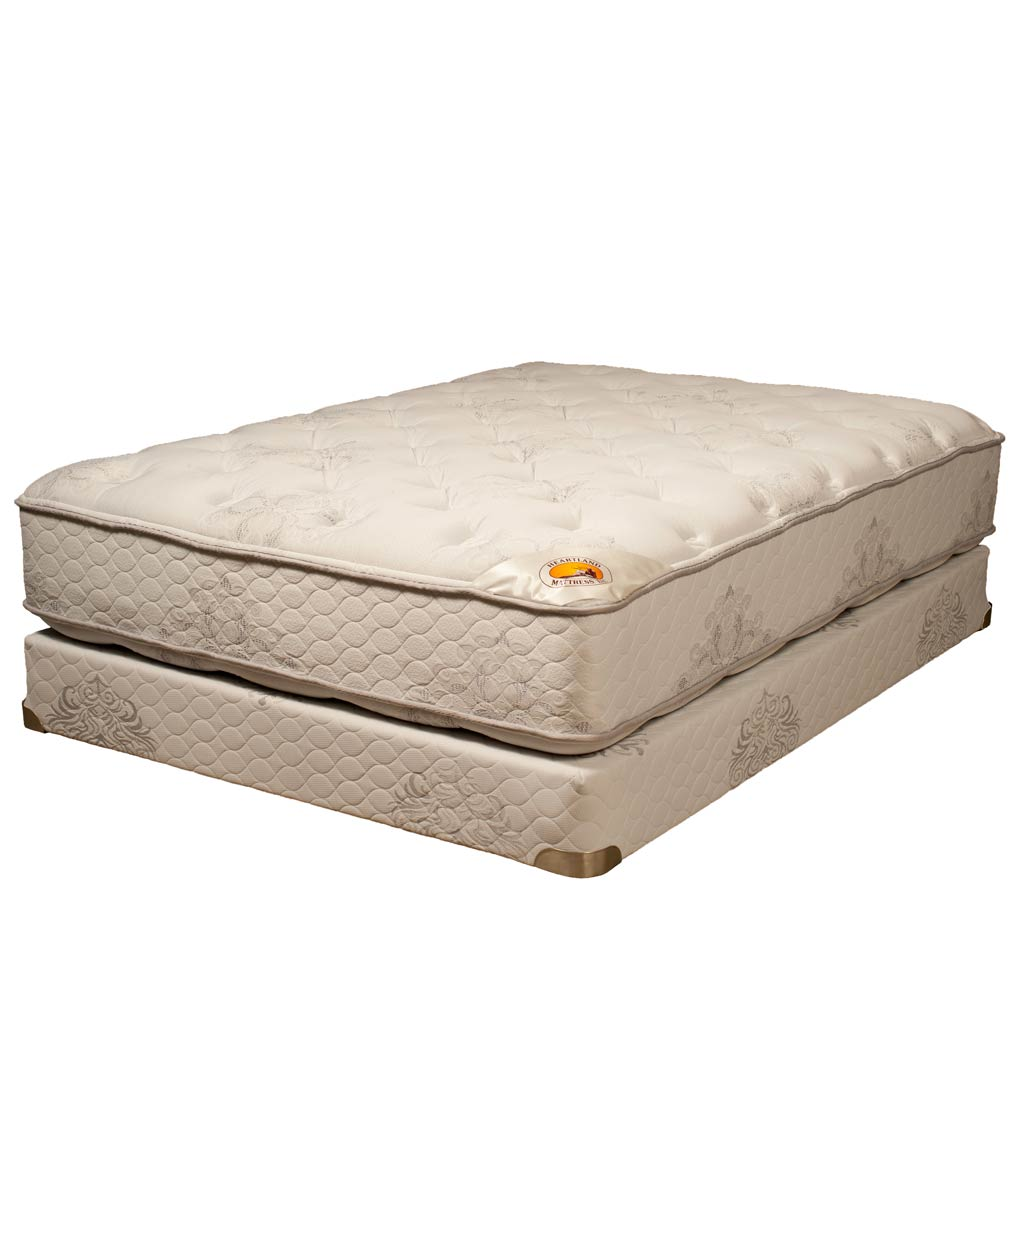 Image Result For Shipping A Queen Mattress And Boxspring